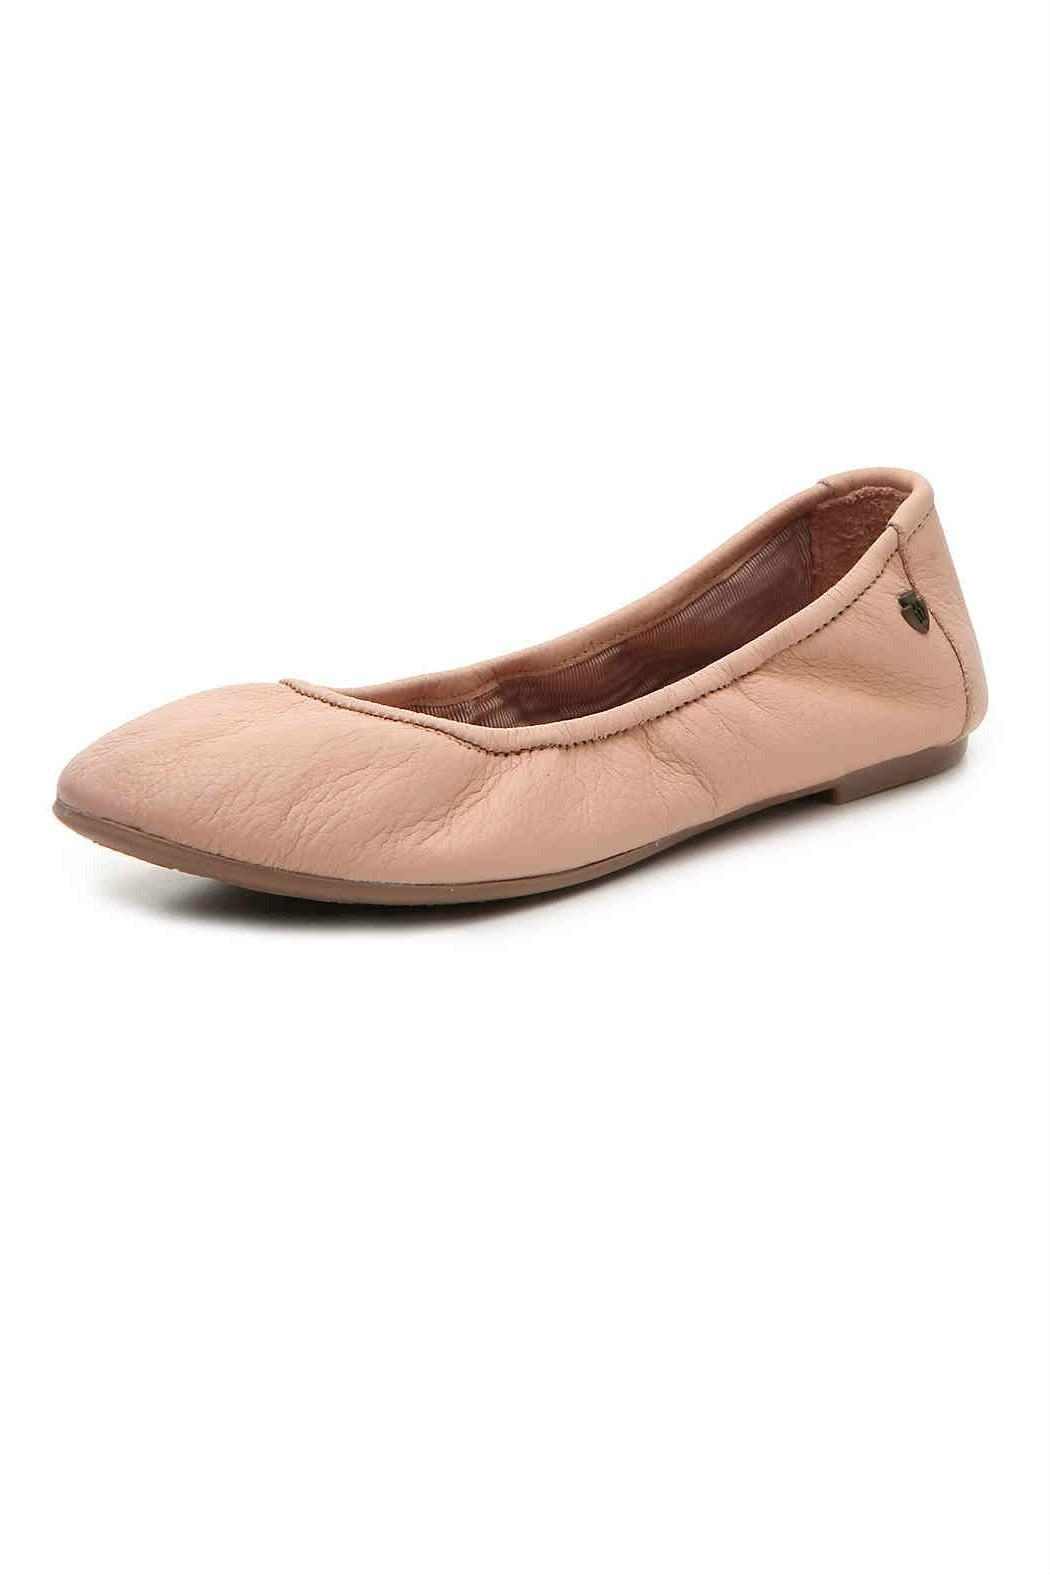 Minnetonka Leather Ballet Flat - Front Cropped Image